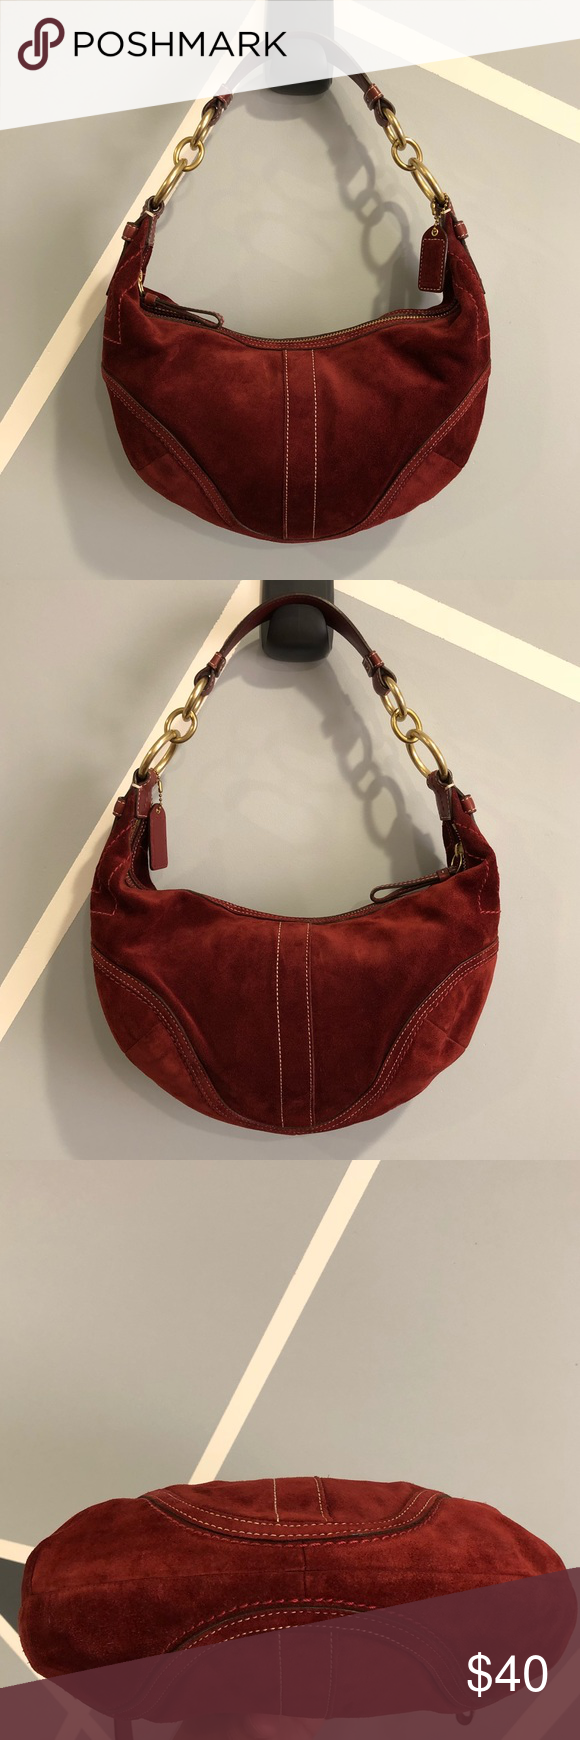 Coach Suede Leather Soho Hobo Bag Burgundy Red Coach Suede Leather Soho Hobo  Shoulder Bag in EXCELLENT condition! Please note-the The keychain tag no  longer ... b3ffe2b261